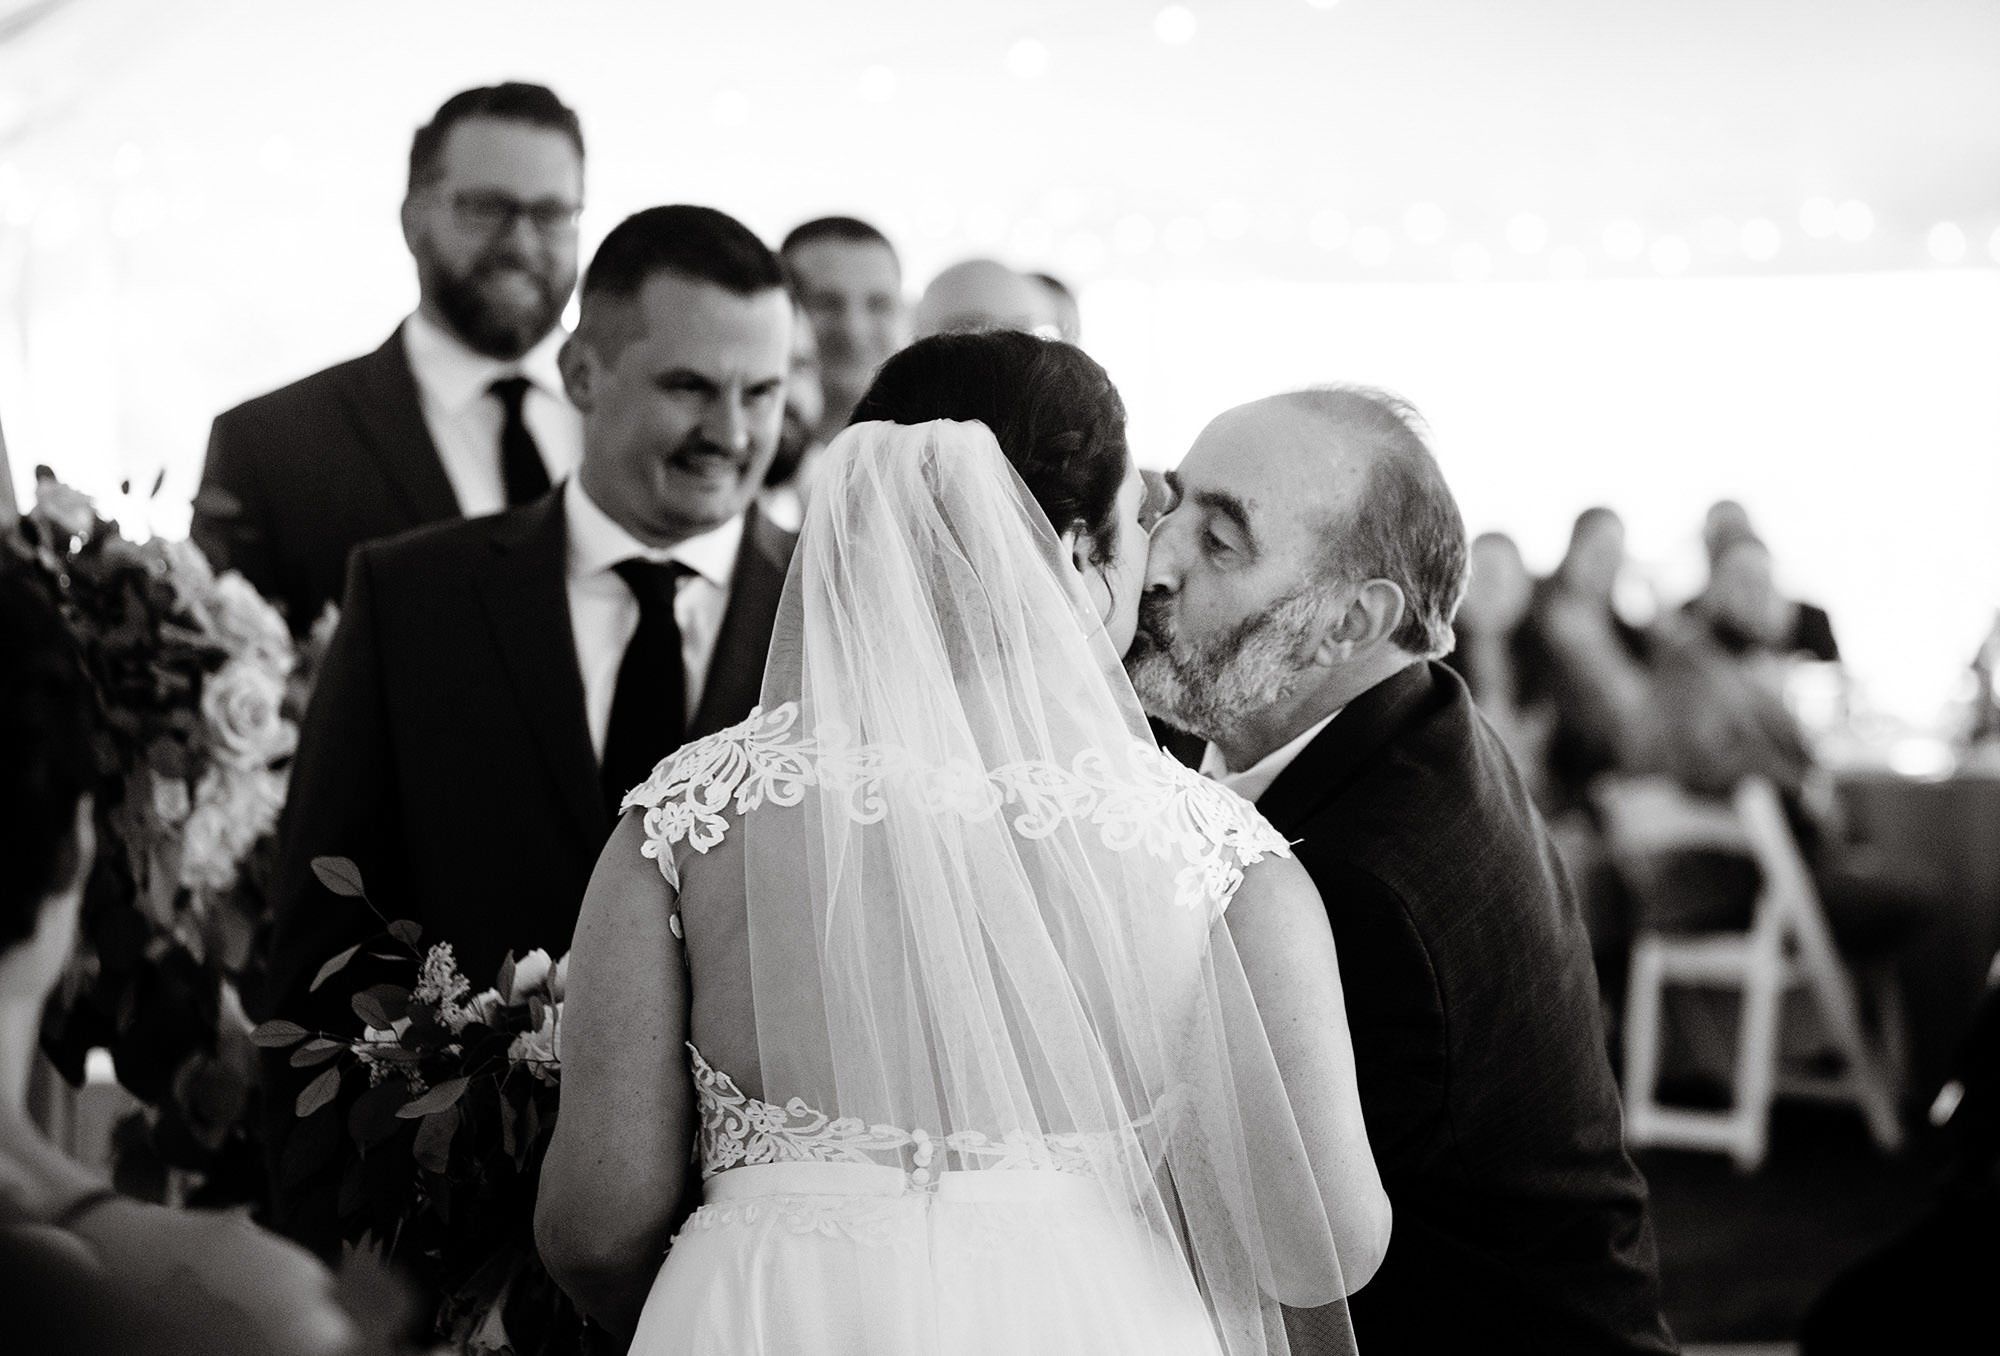 The father of the bride kisses his daughter during the ceremony.